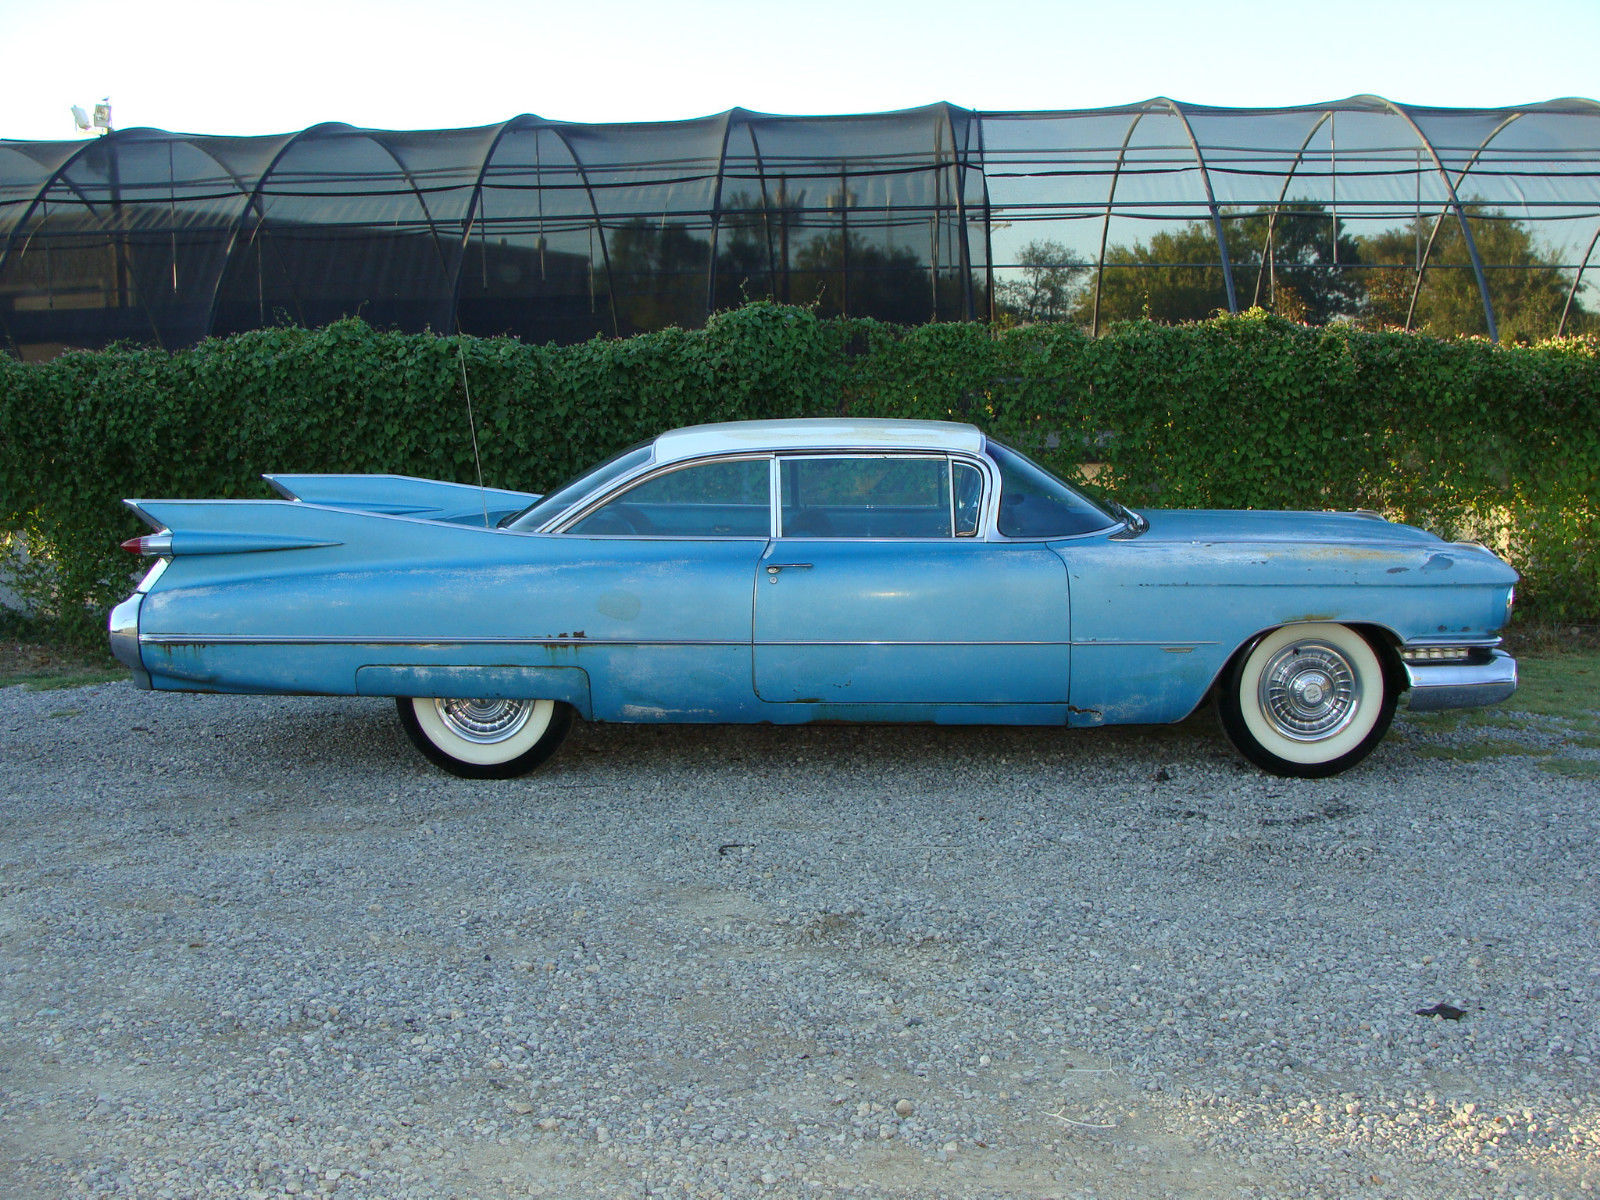 1959 CADILLAC SERIES 62 COUPE. FACTORY A/C .RUNS, SOLID ...